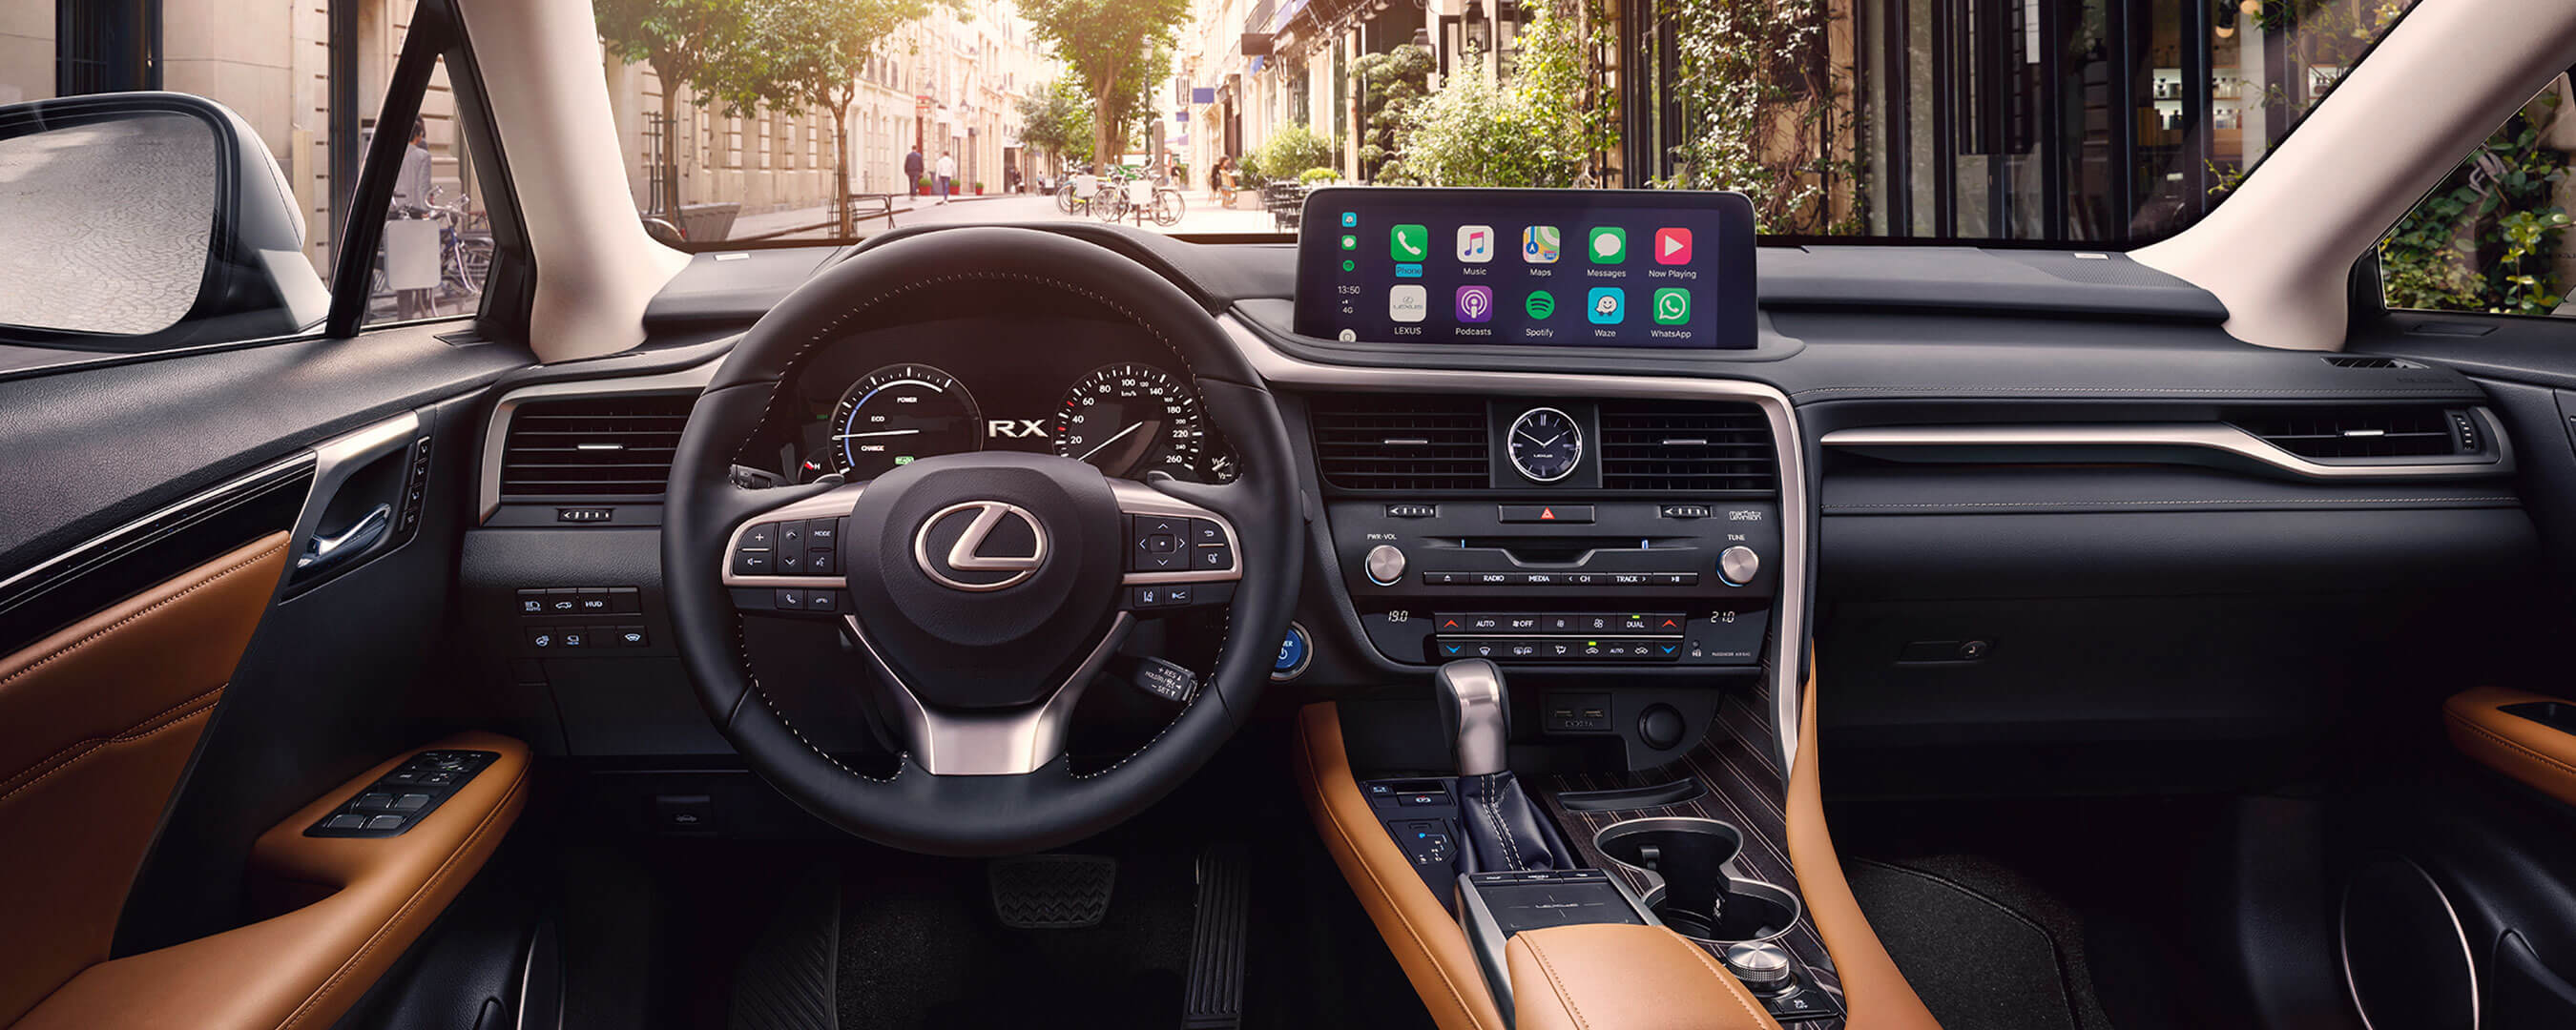 2019 lexus rxl experience interior front